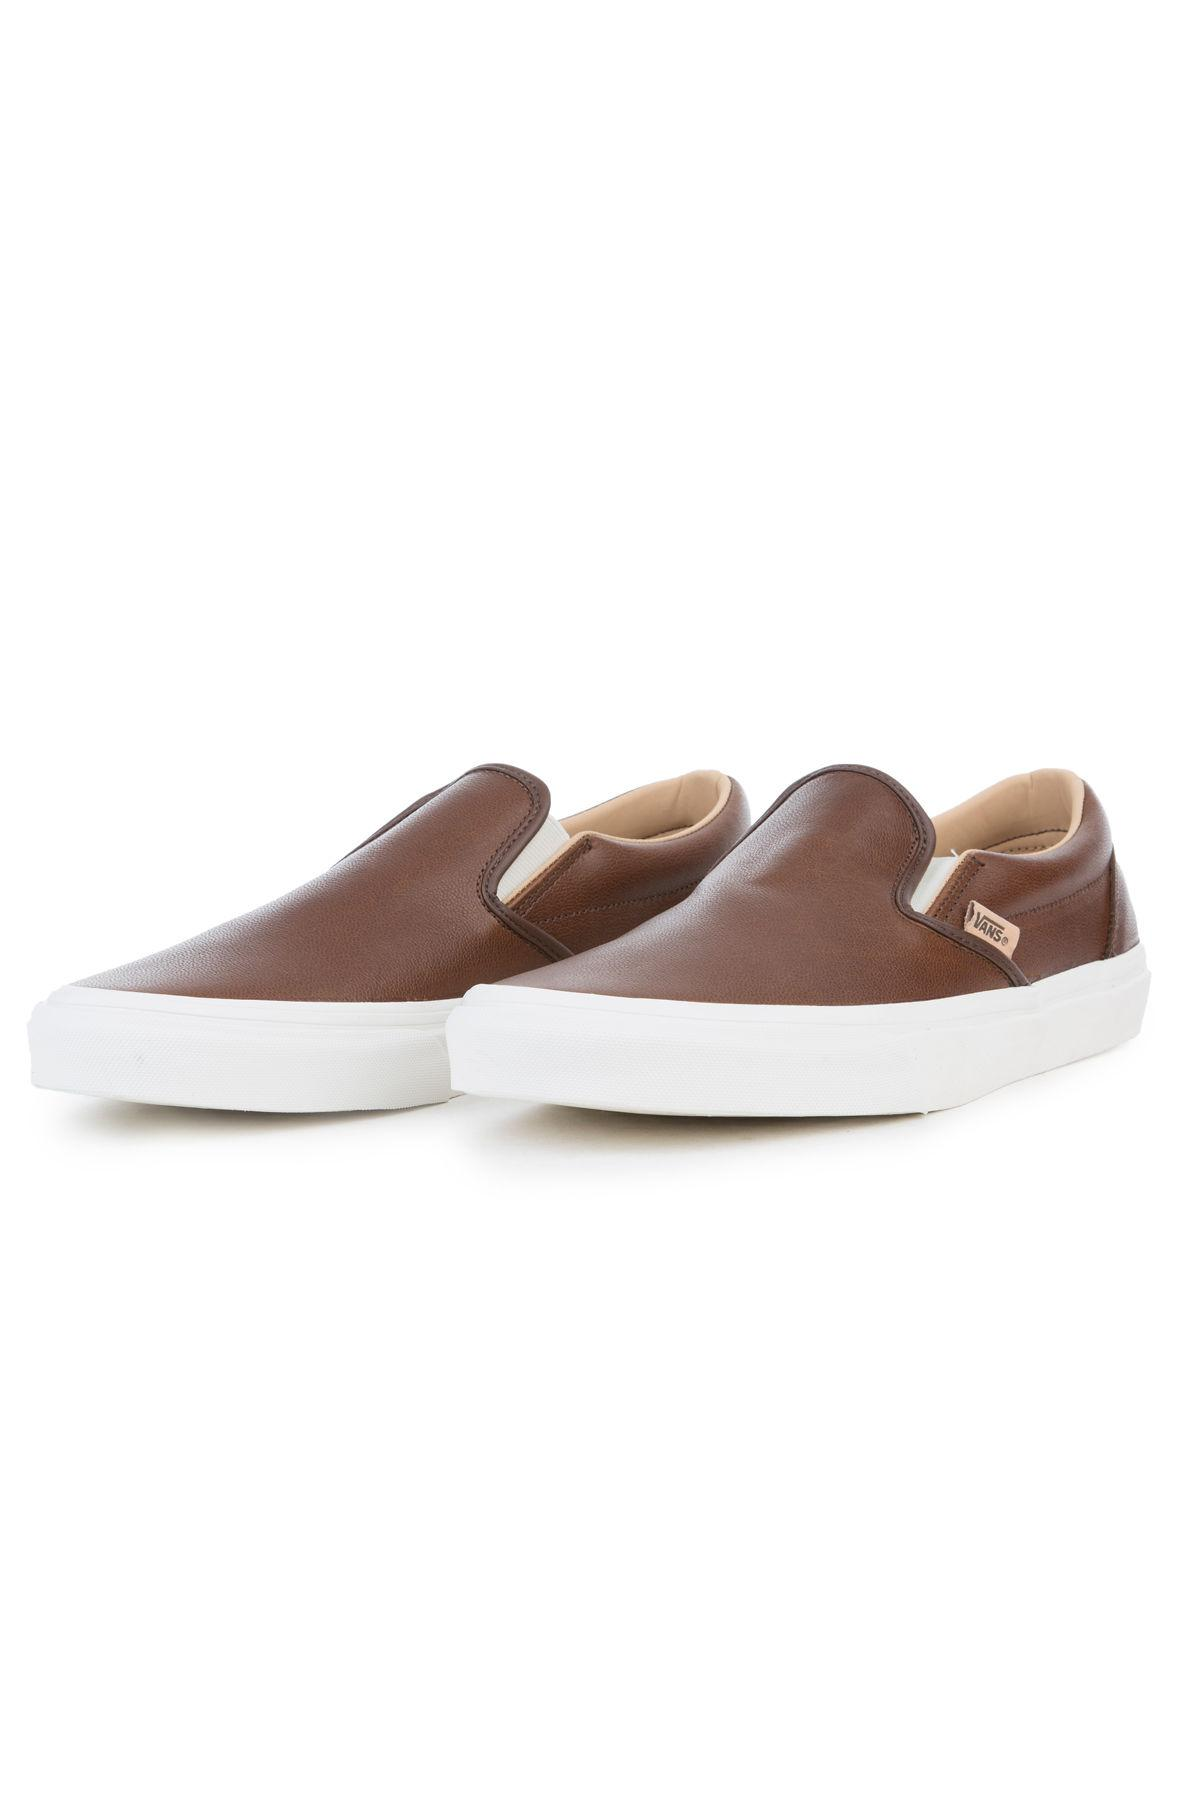 Lyst - Vans The Classic Slip-on Lux Leather In Shaved Chocolate And ... 4d32dd1df